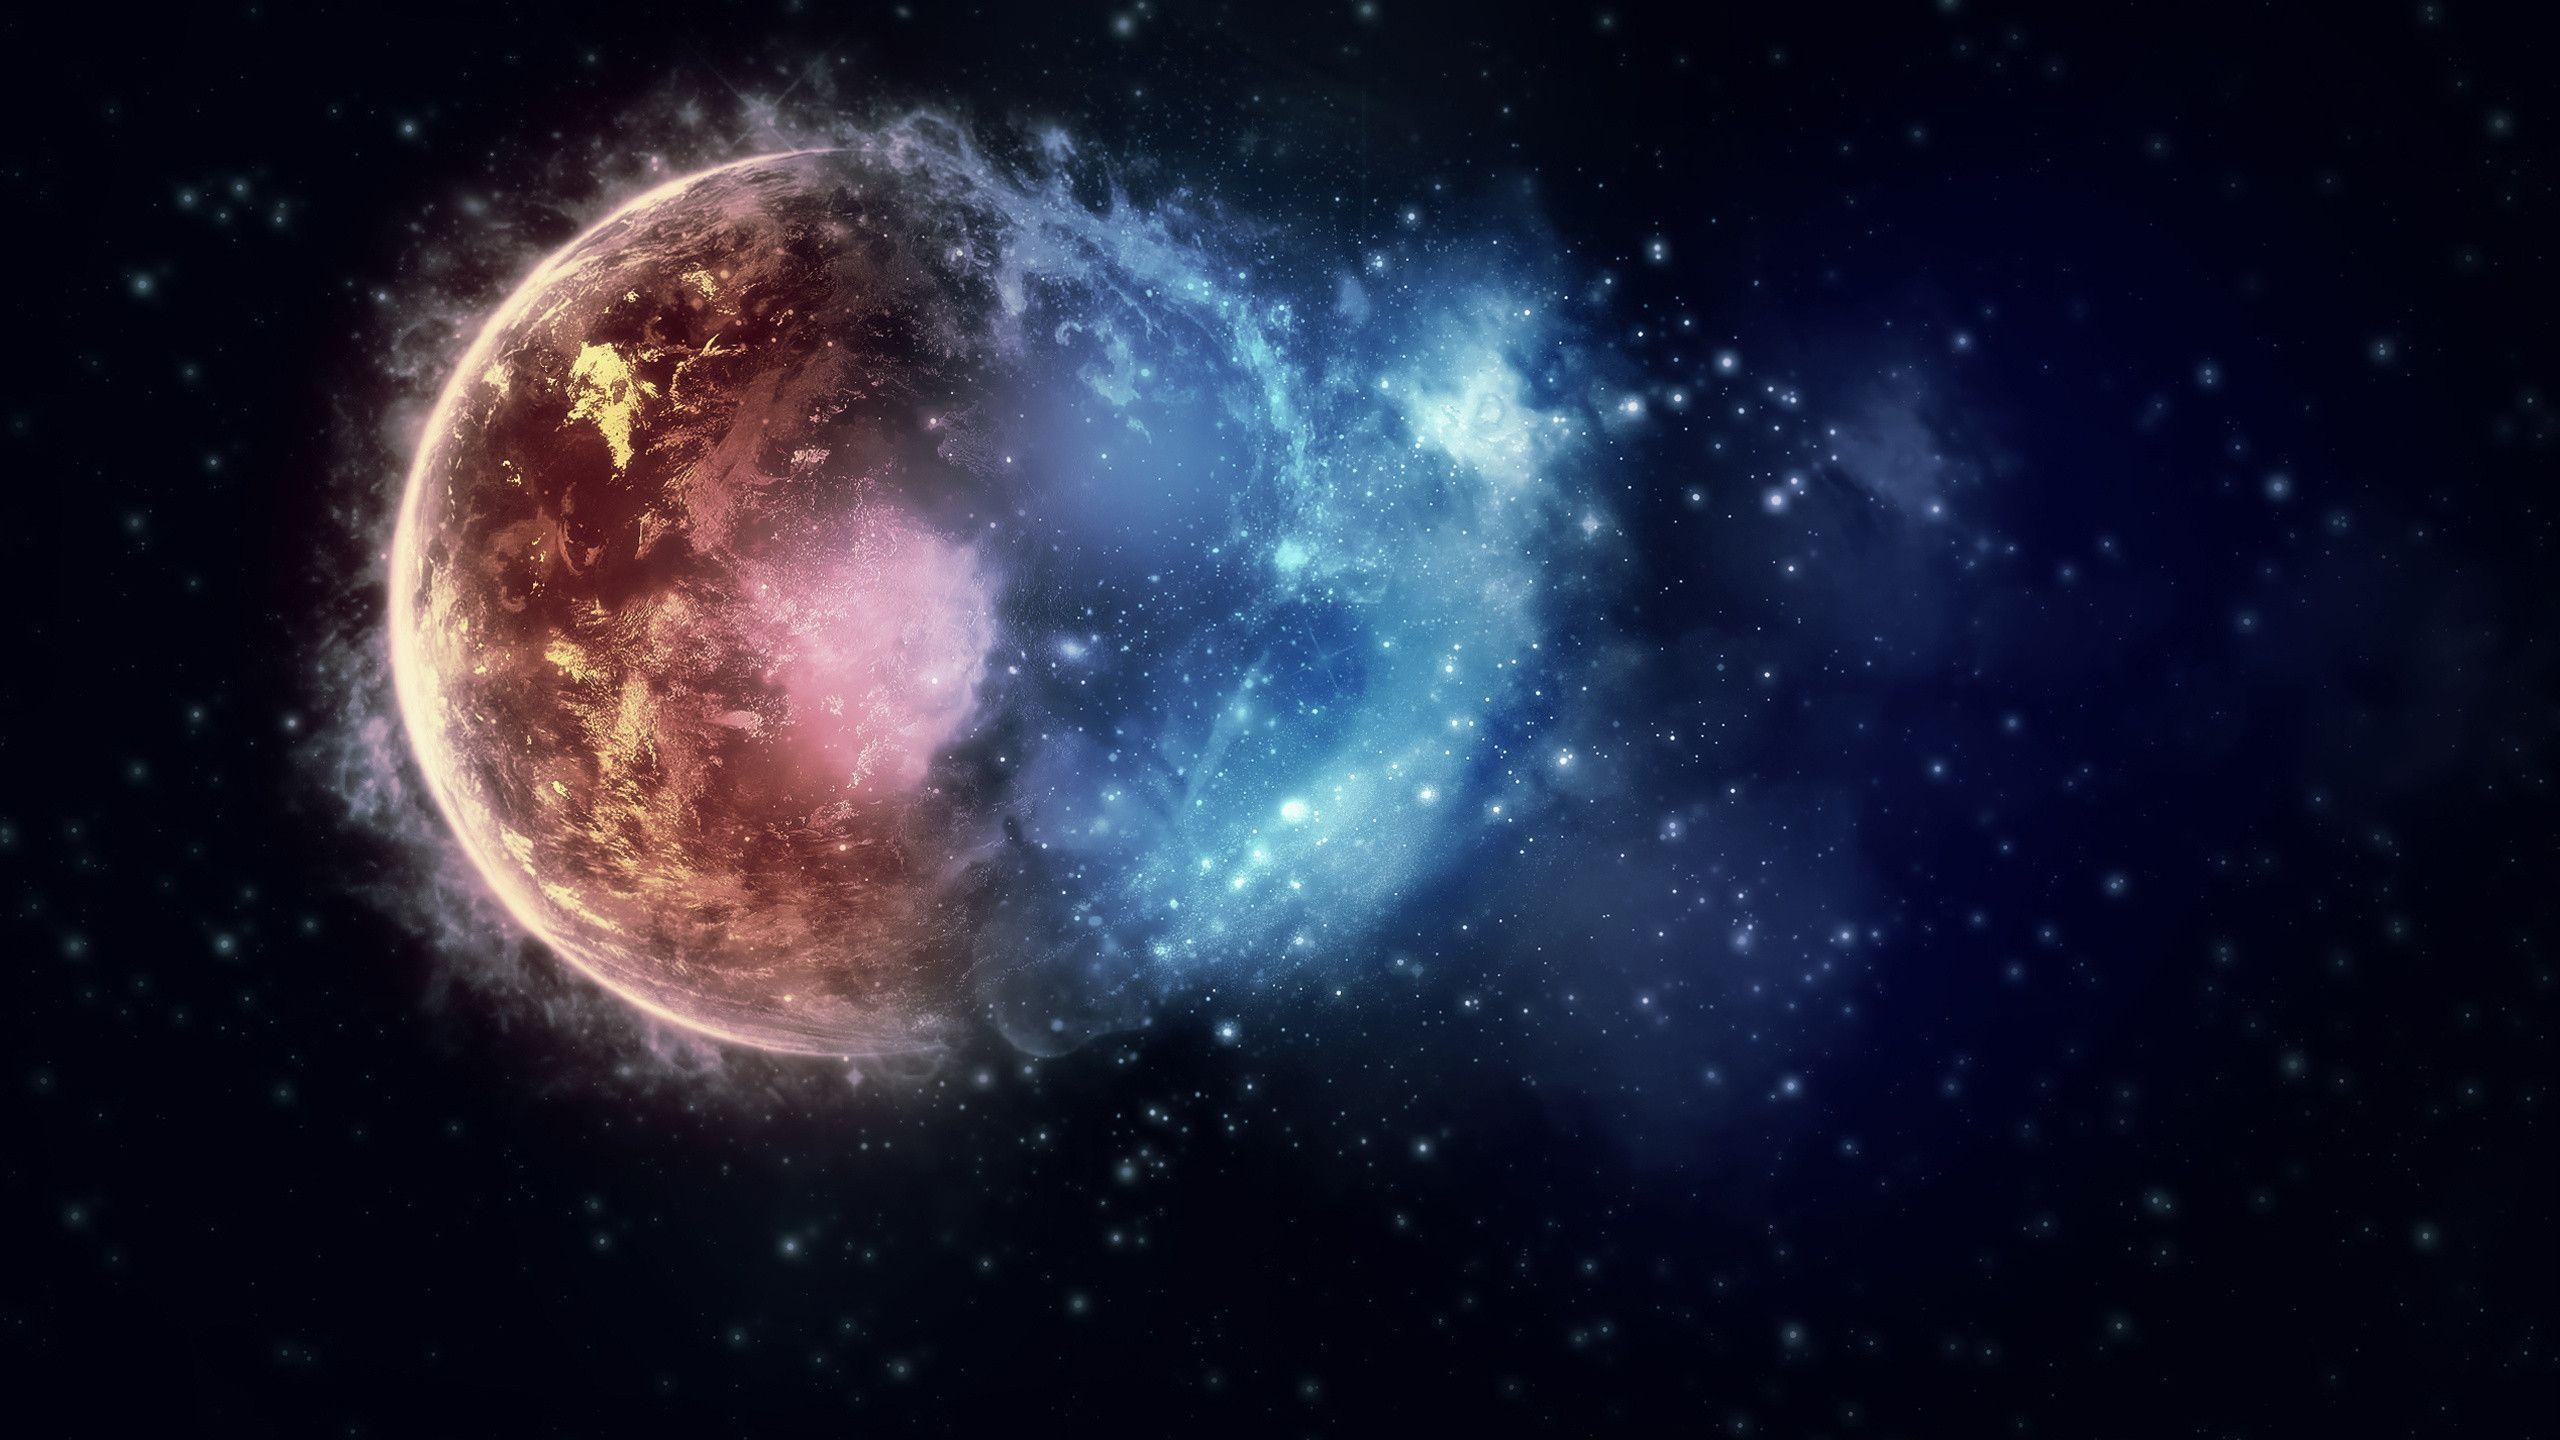 Cool Planet Backgrounds 2560x1440